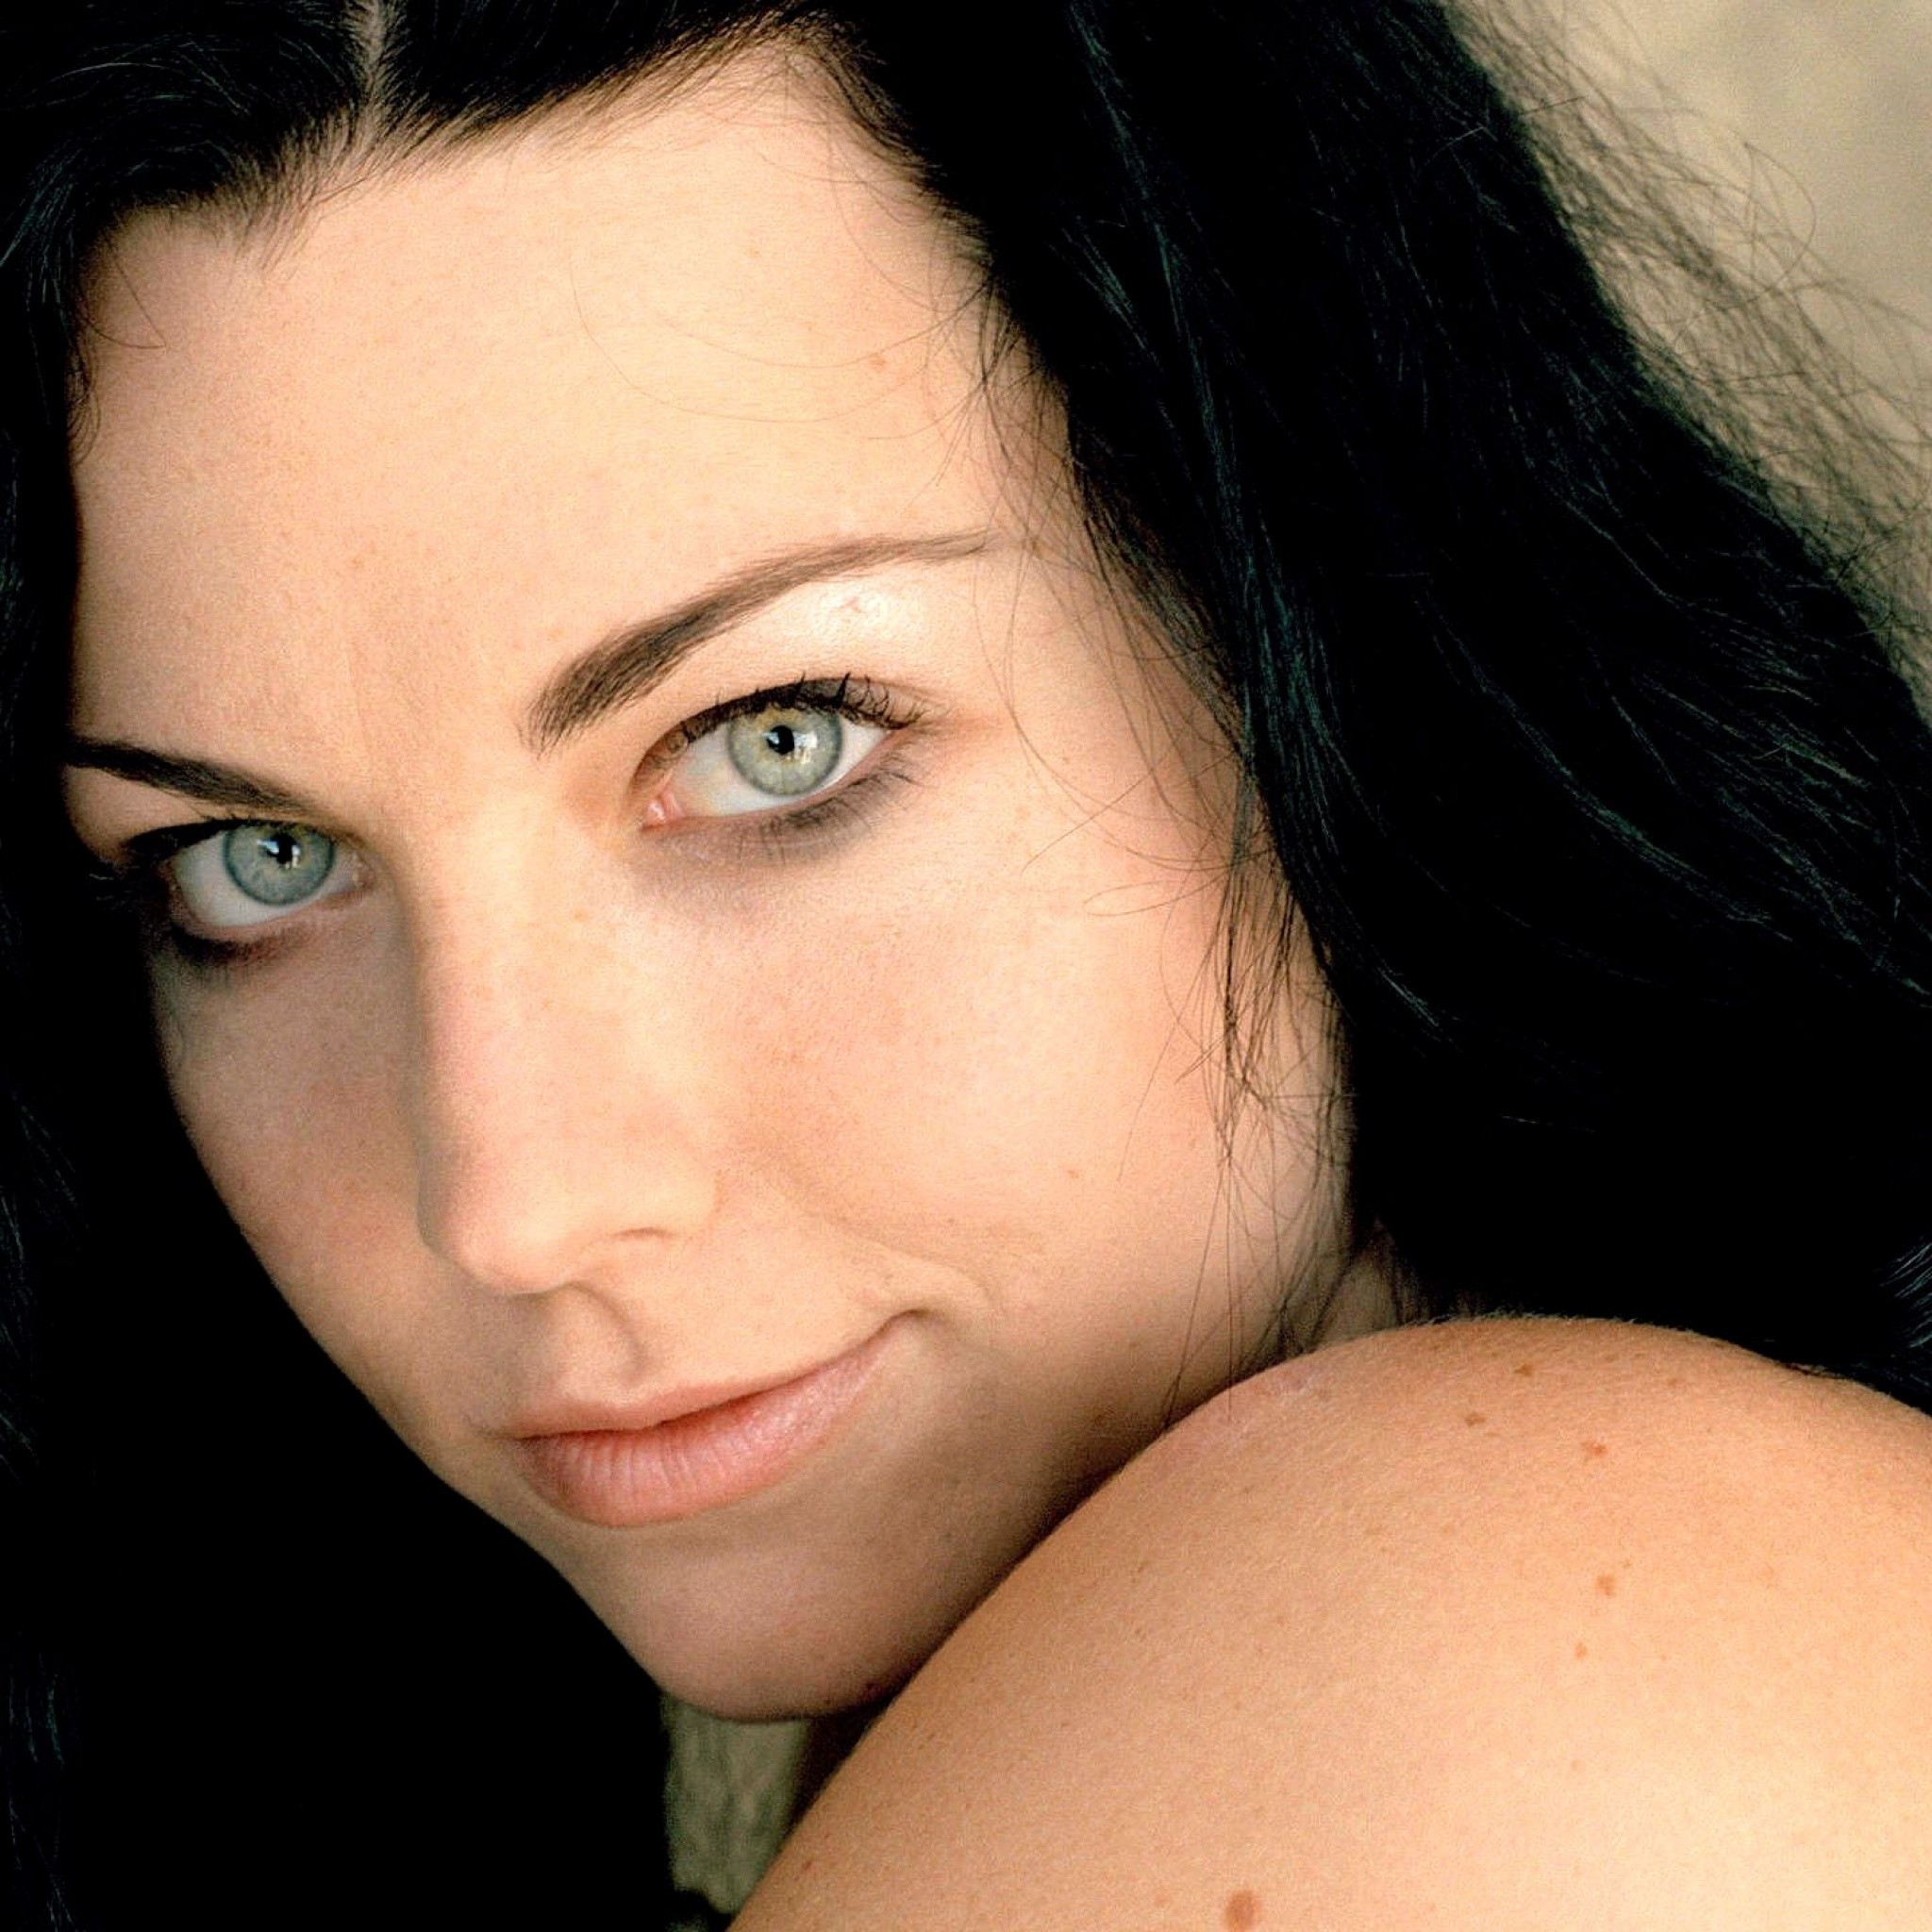 Res: 2048x2048, Amy Lee Minecraft In Real Life